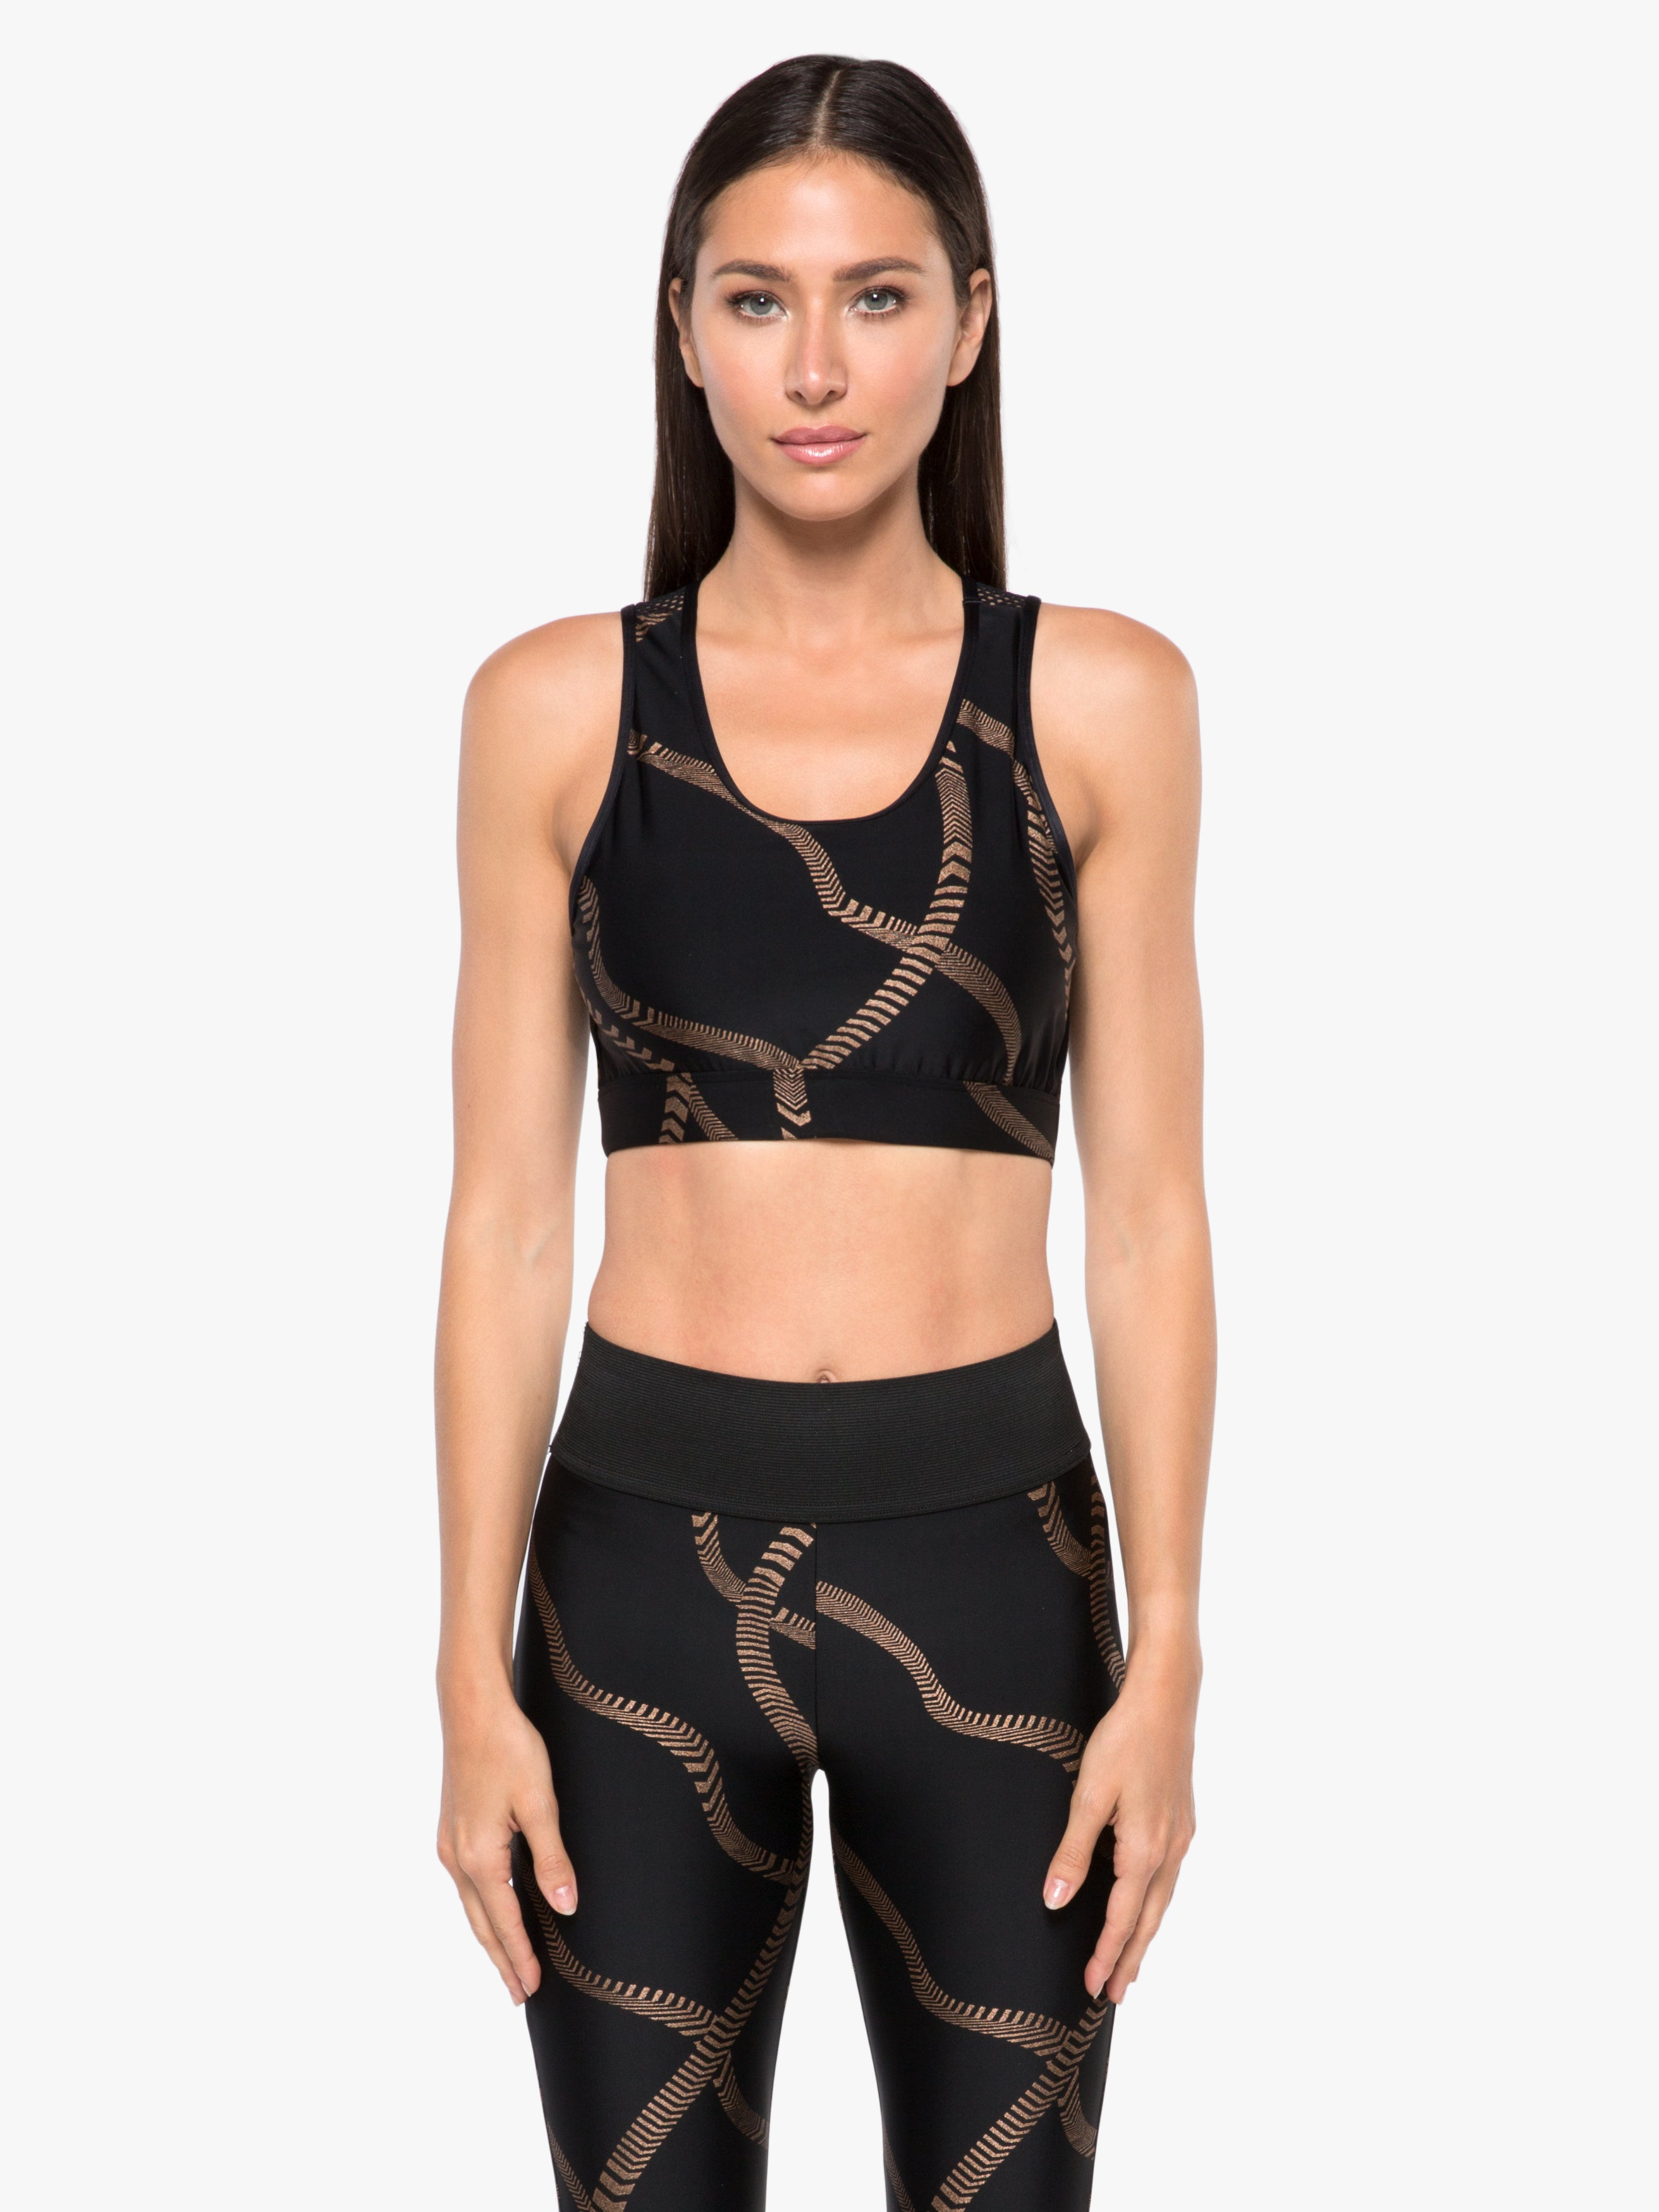 Stamina Impression Sports Bra - Convolve Black